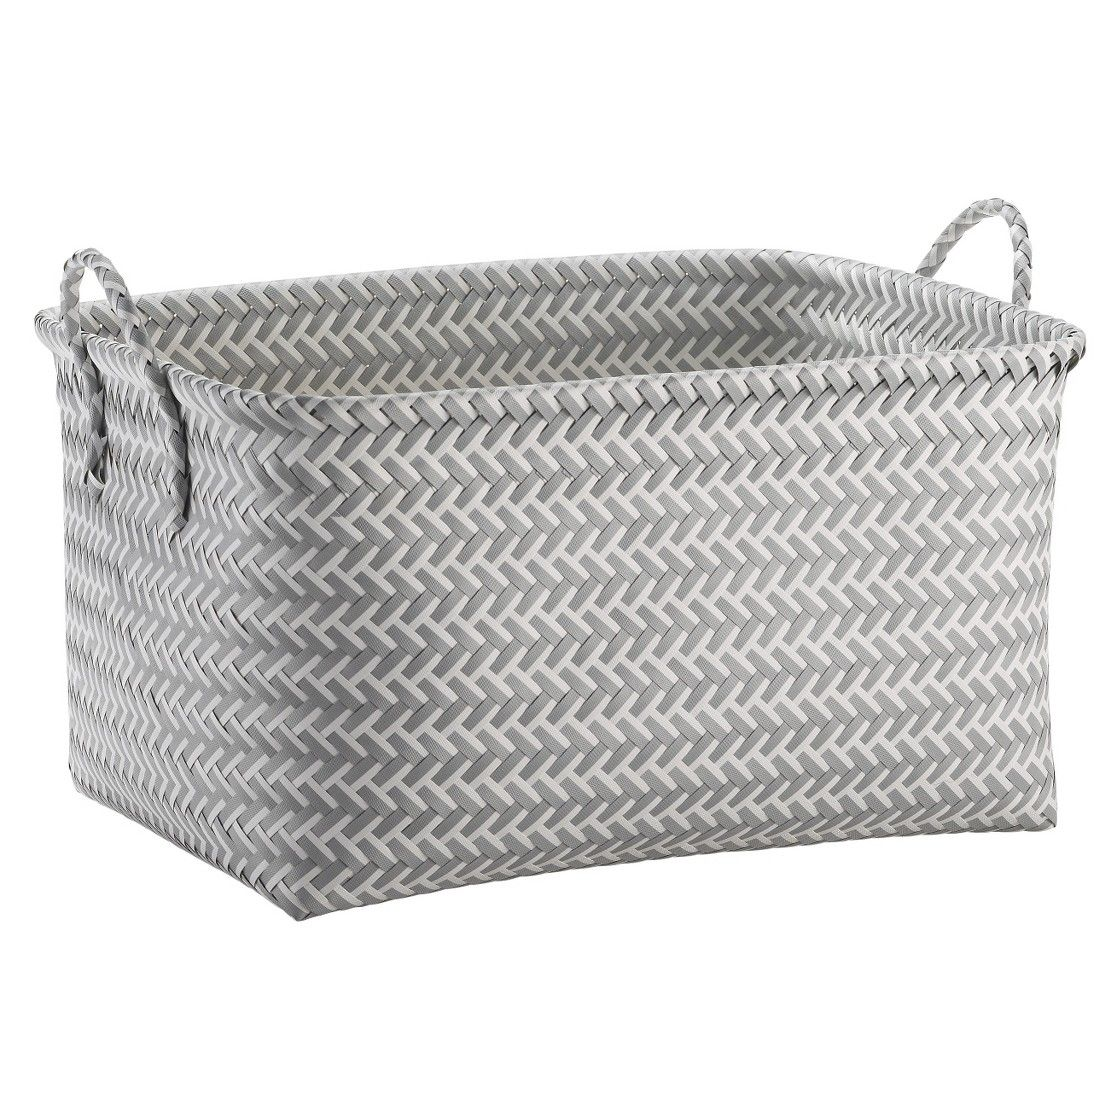 Laundry Bag Target Large Woven Rectangular Storage Basket  Gray And White  Room